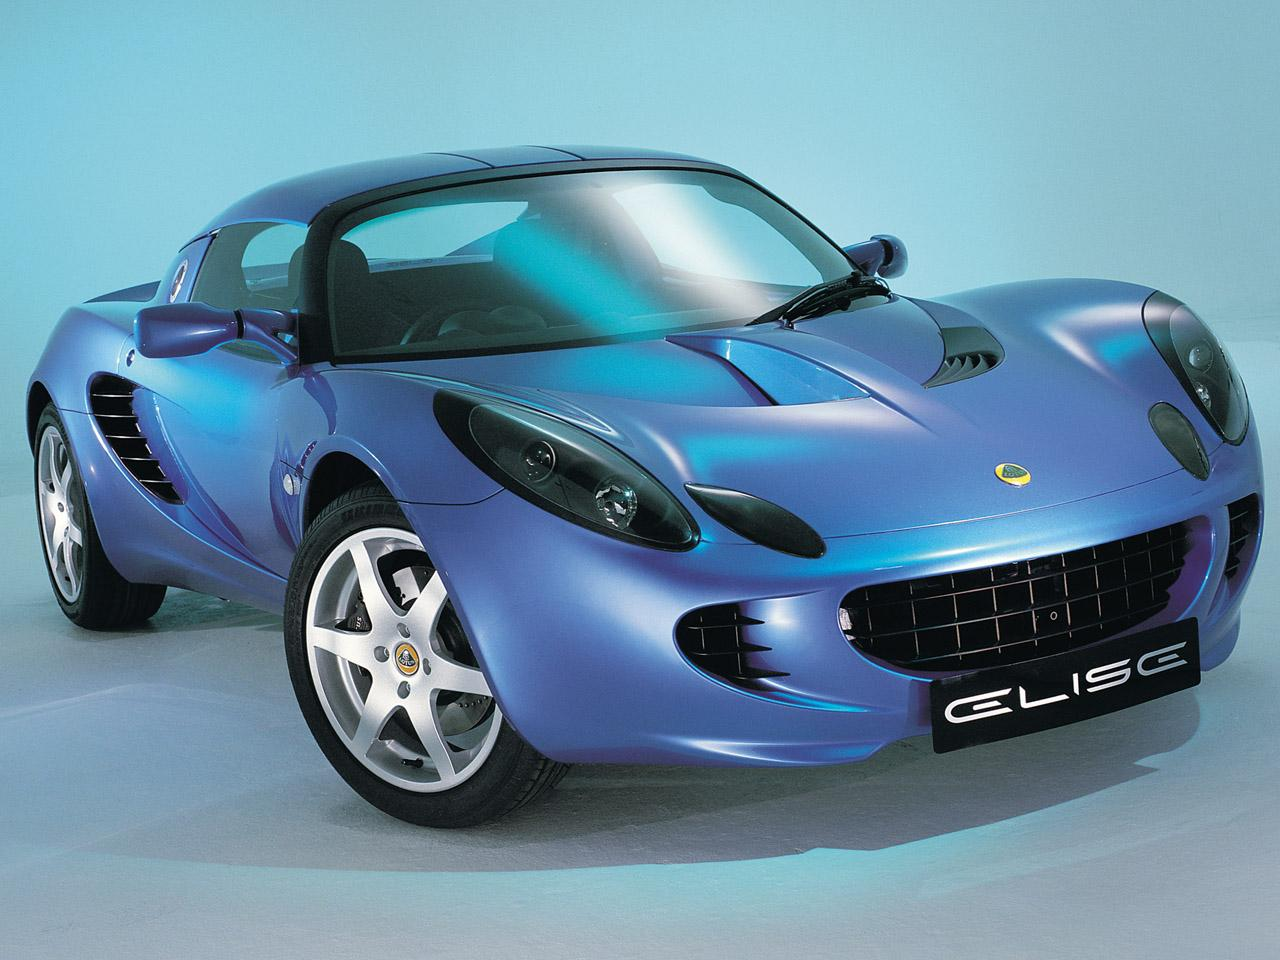 2008 lotus elise. Black Bedroom Furniture Sets. Home Design Ideas